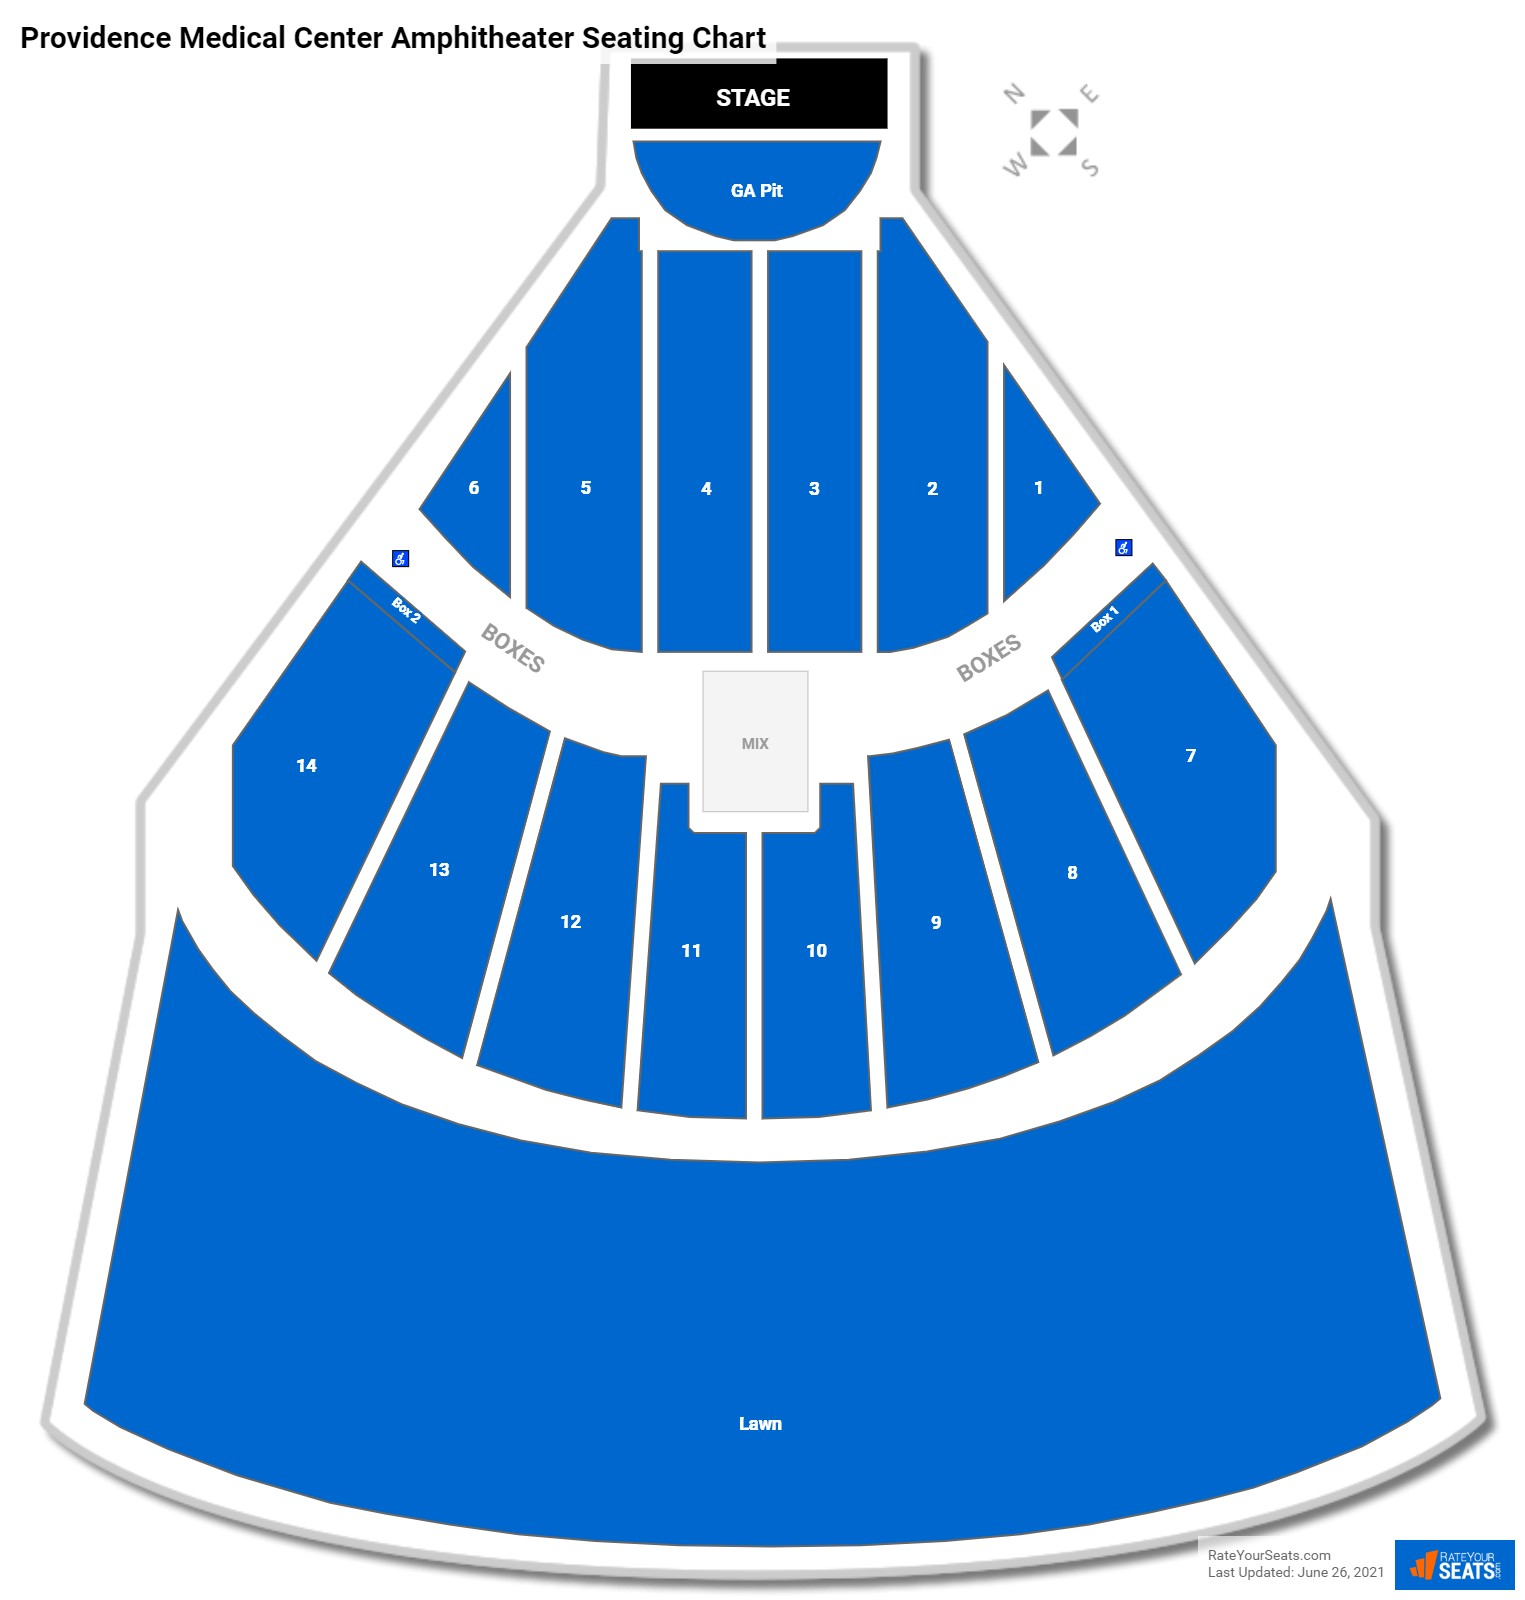 Providence Medical Center Amphitheater Seating Chart